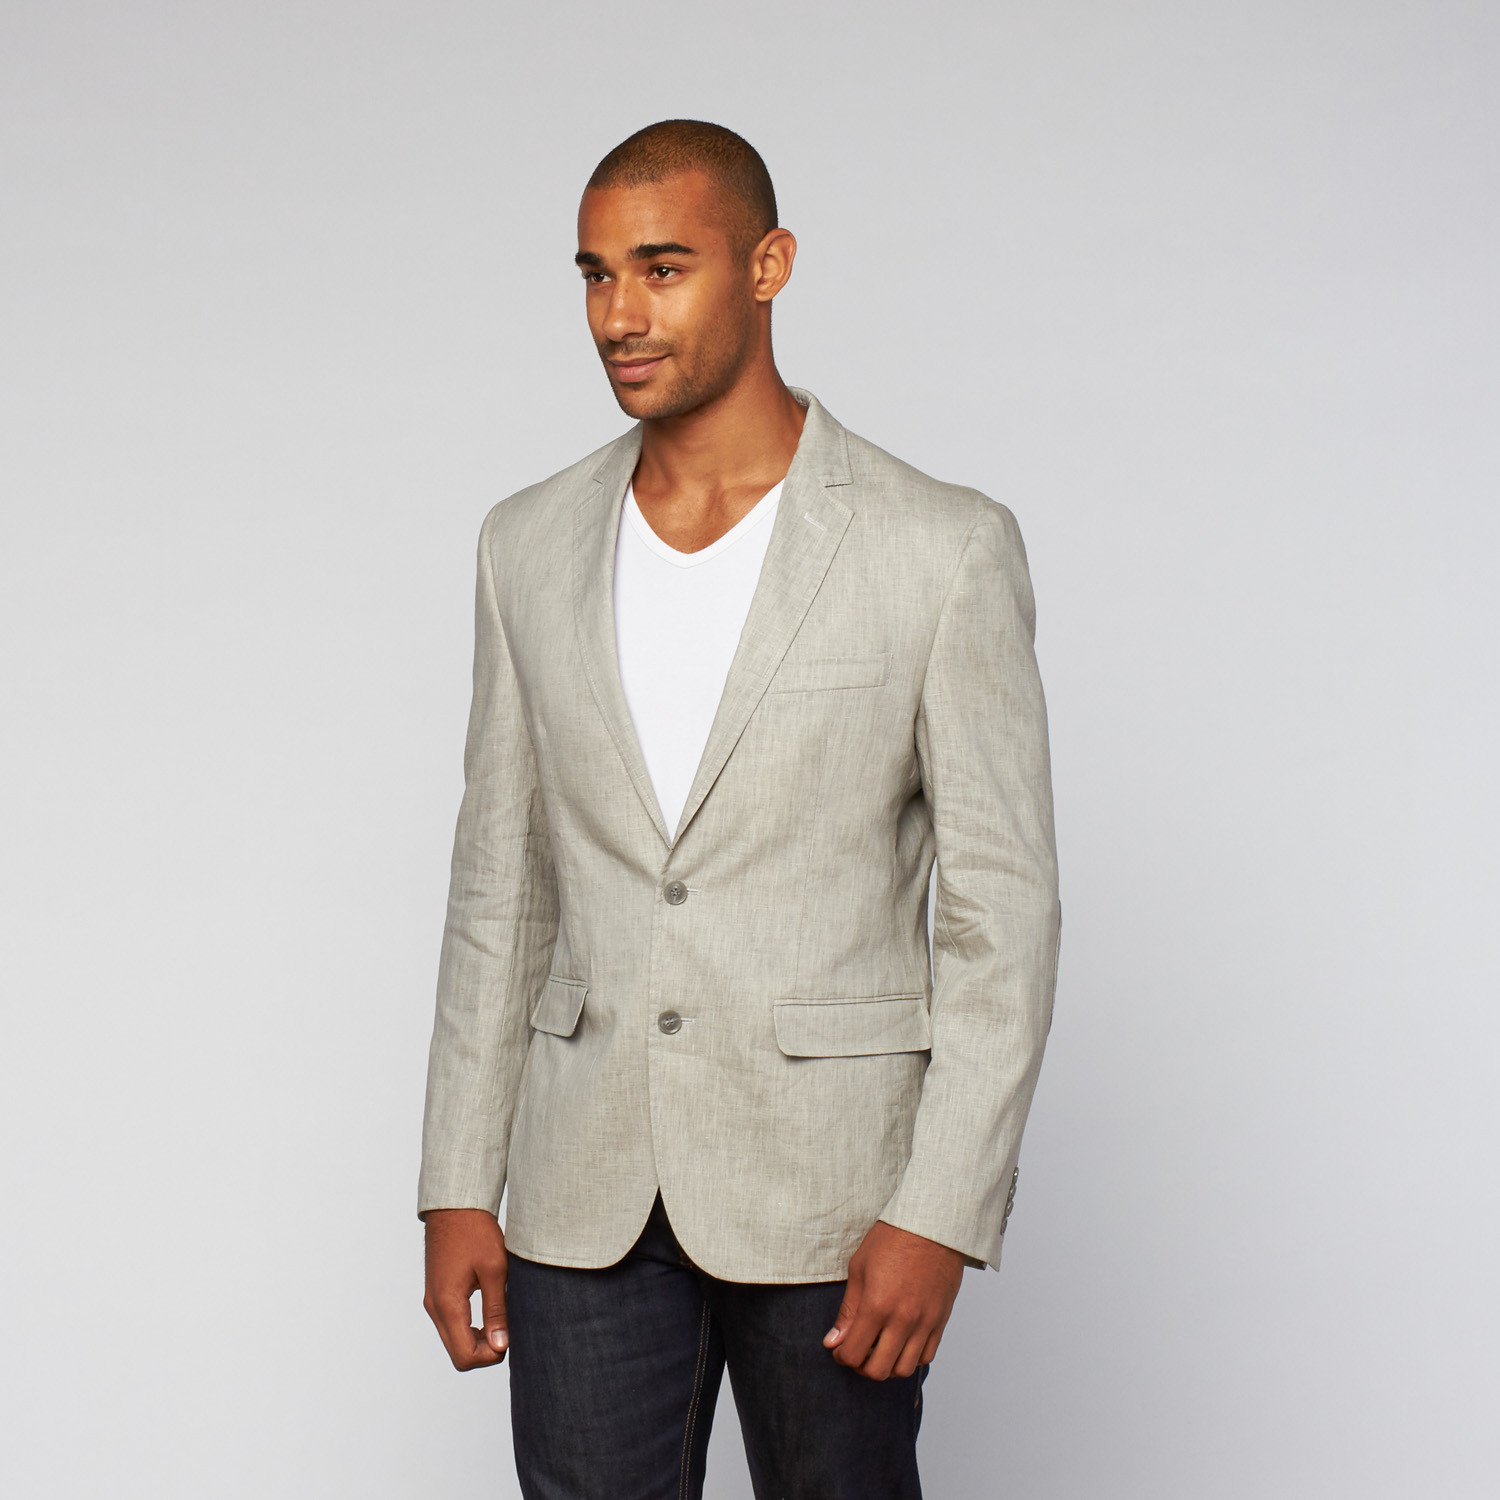 Casual Washed Linen Jacket // Charcoal (US: 38S)